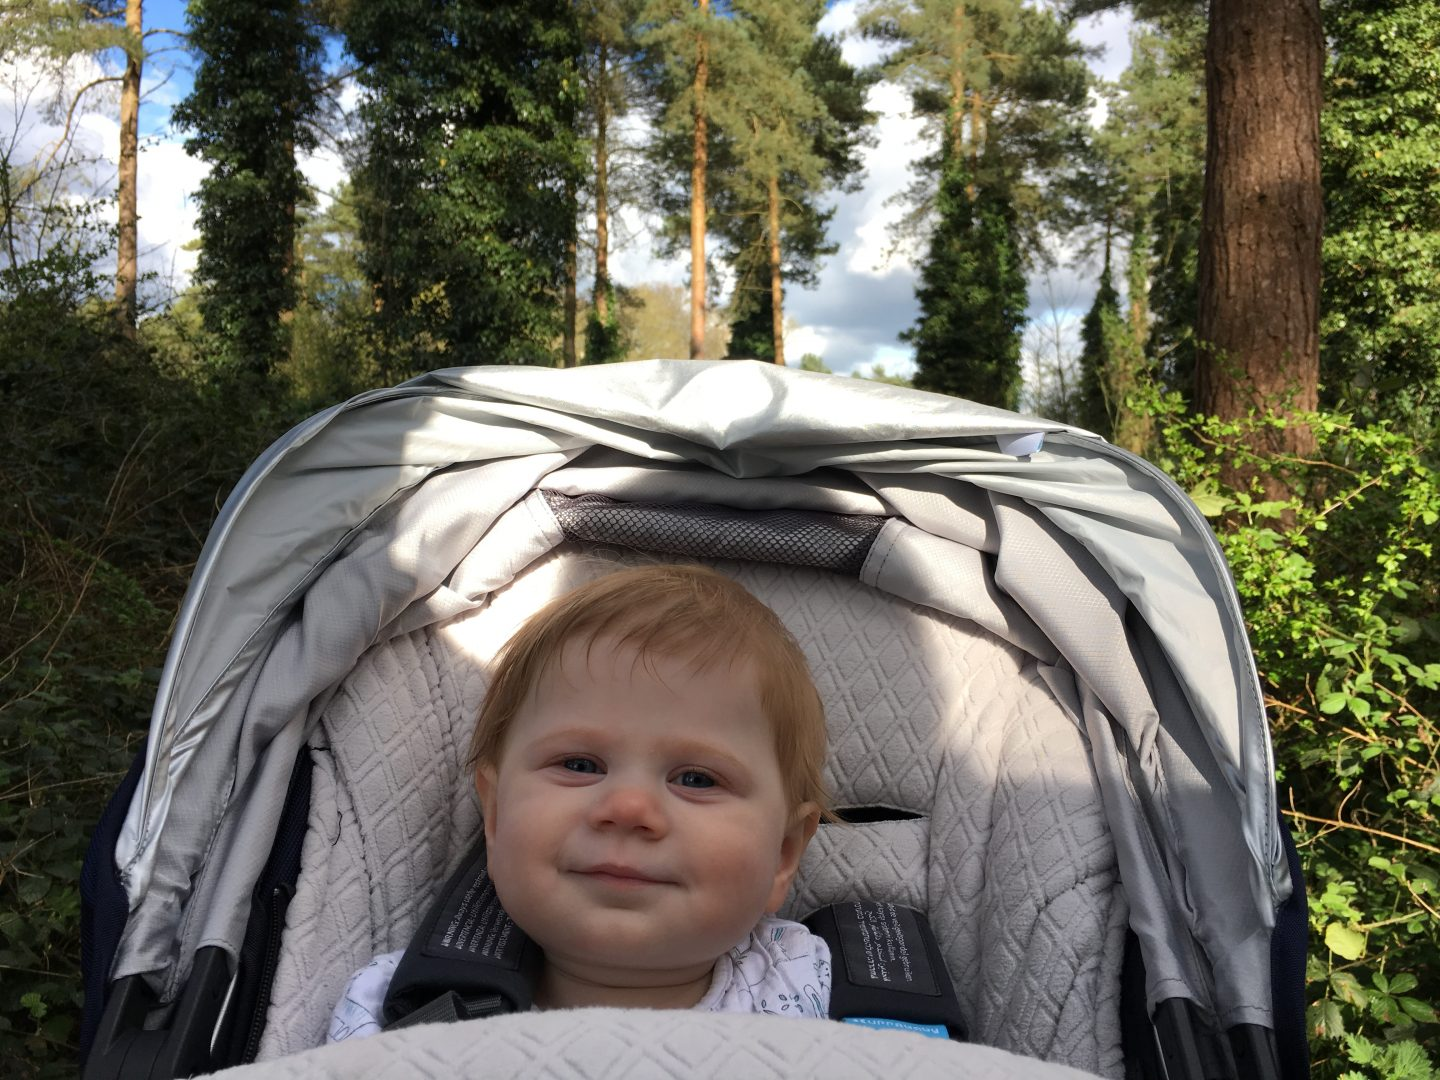 Little M in her pram walking in the woods